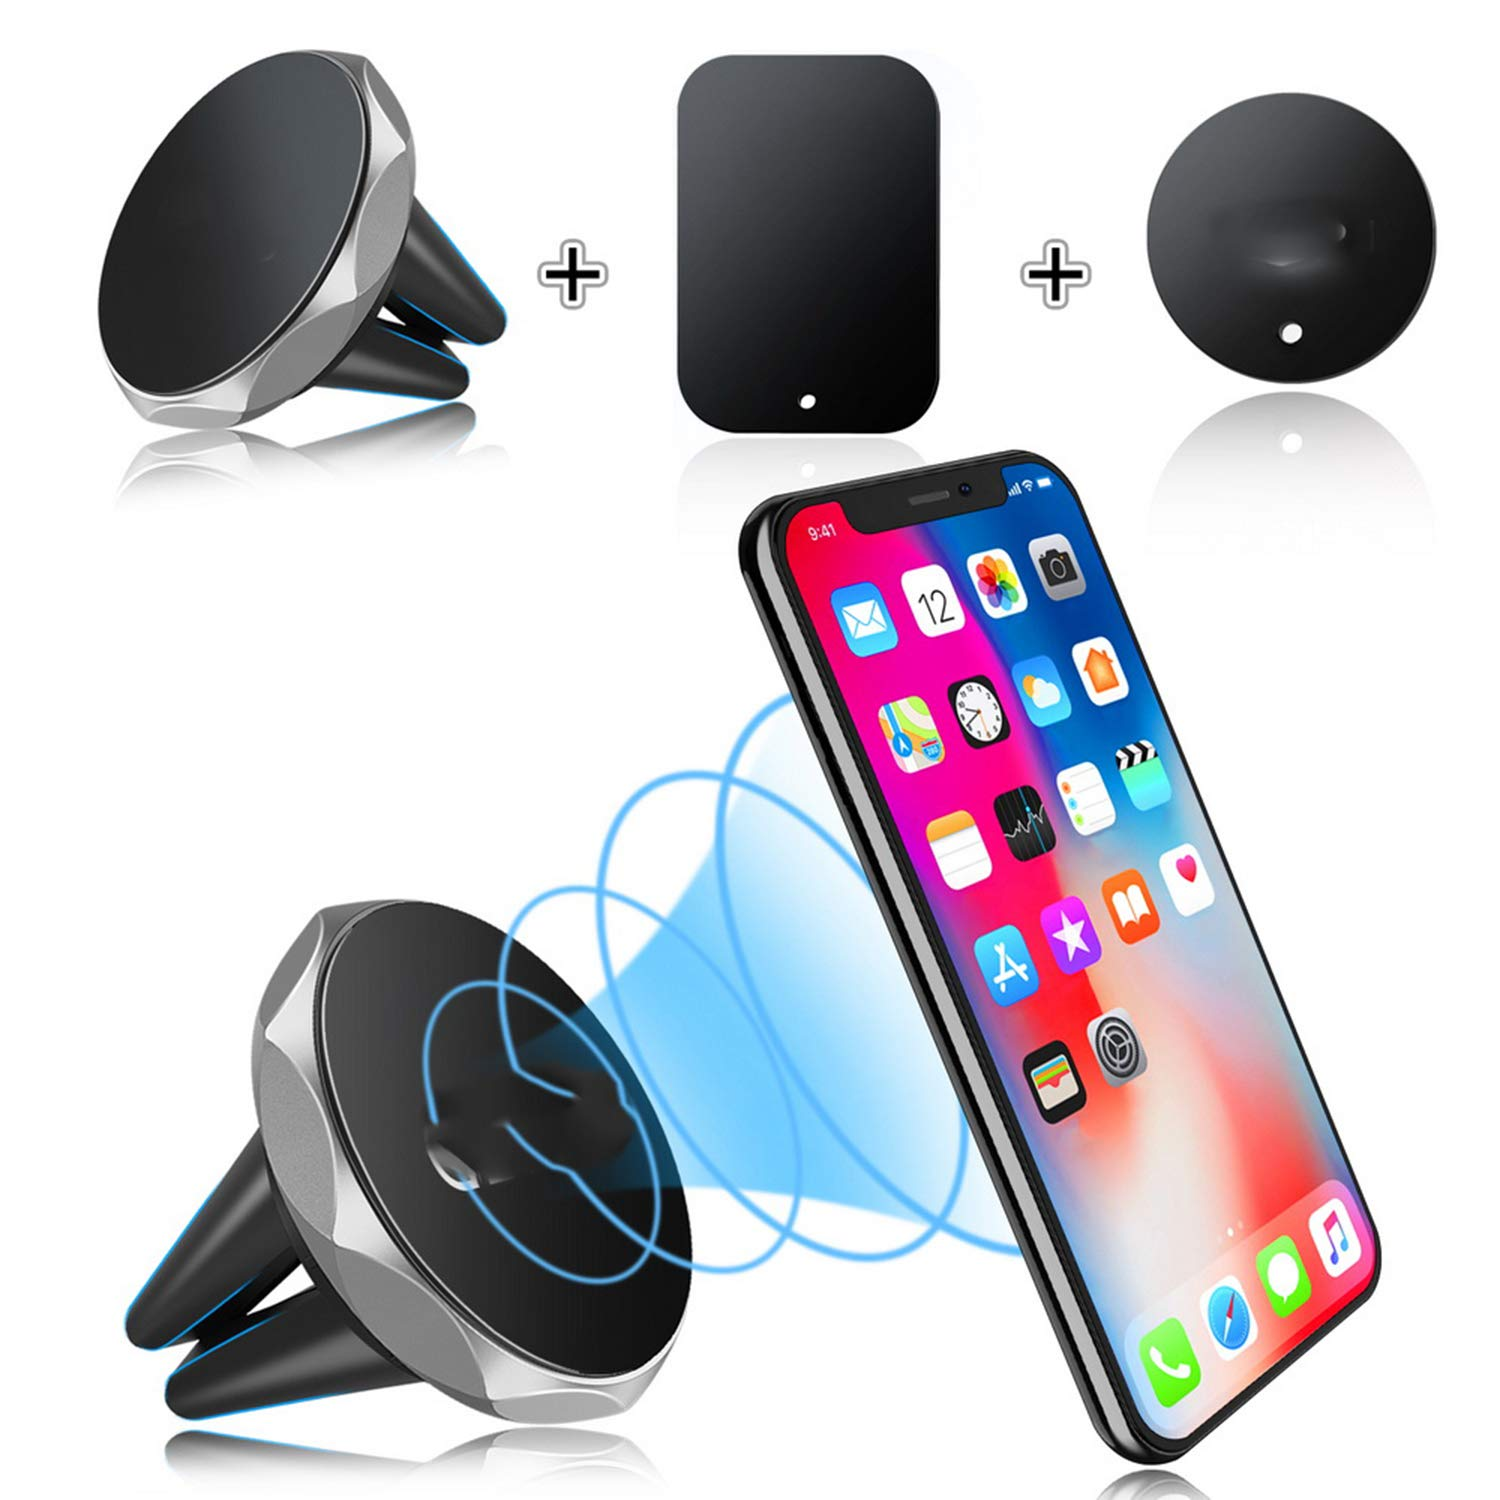 Amazon.com: Car Phone Holder Magnetic Air Vent Support Cell in Car GPS for iPhone Xs Max Samsung Silver: Cell Phones & Accessories